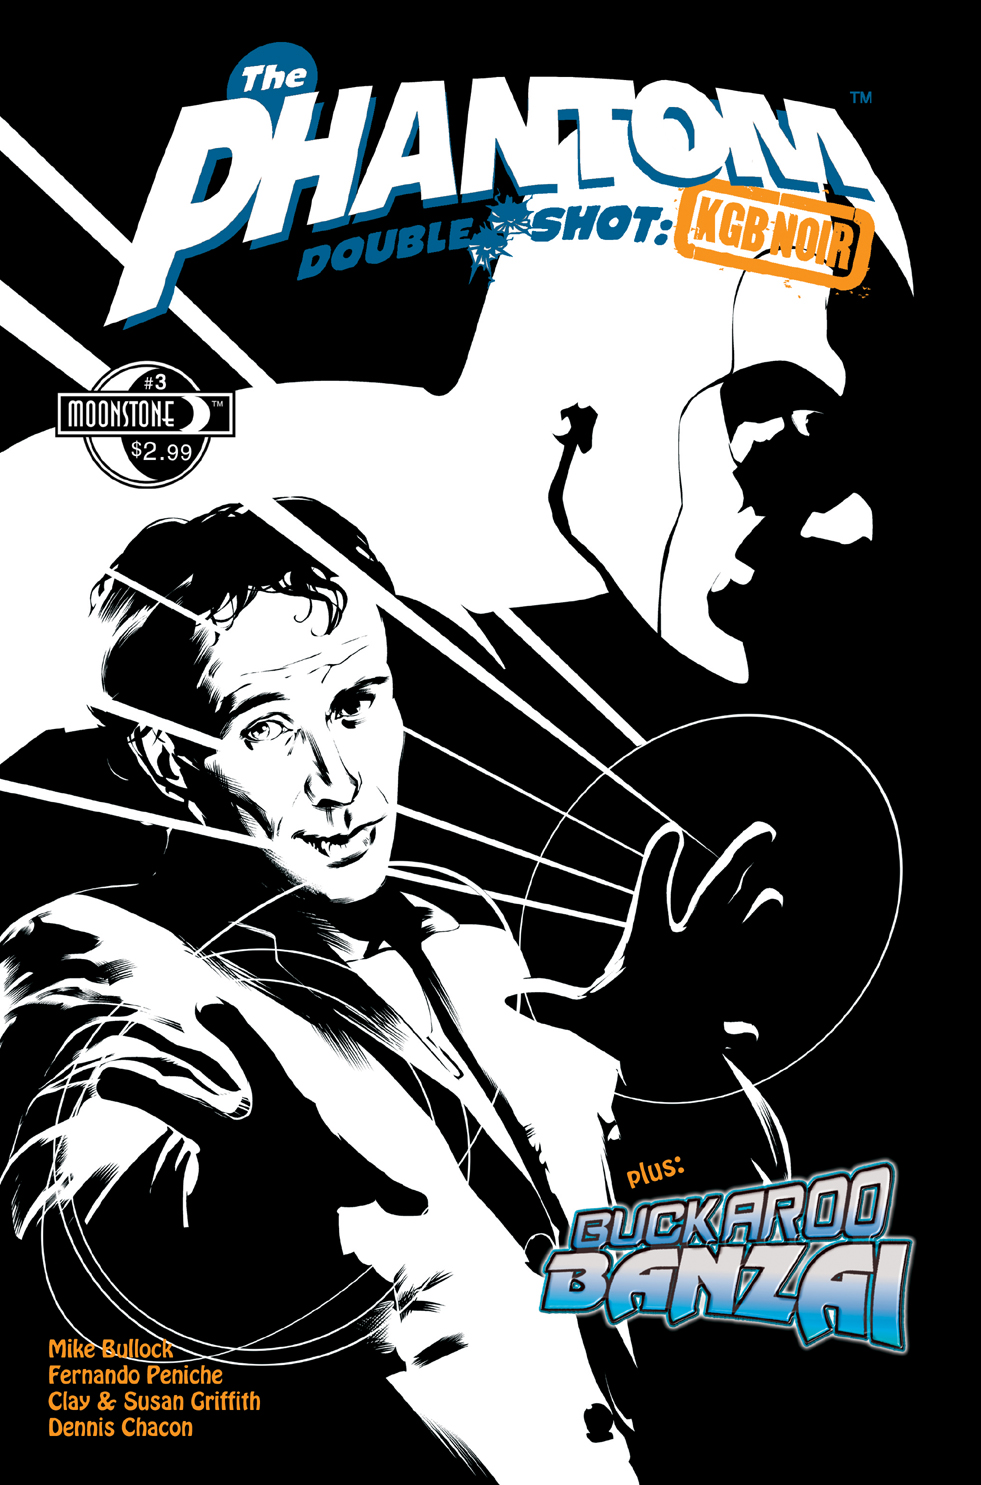 093. Phantom: Double Shot KGB Noir #3